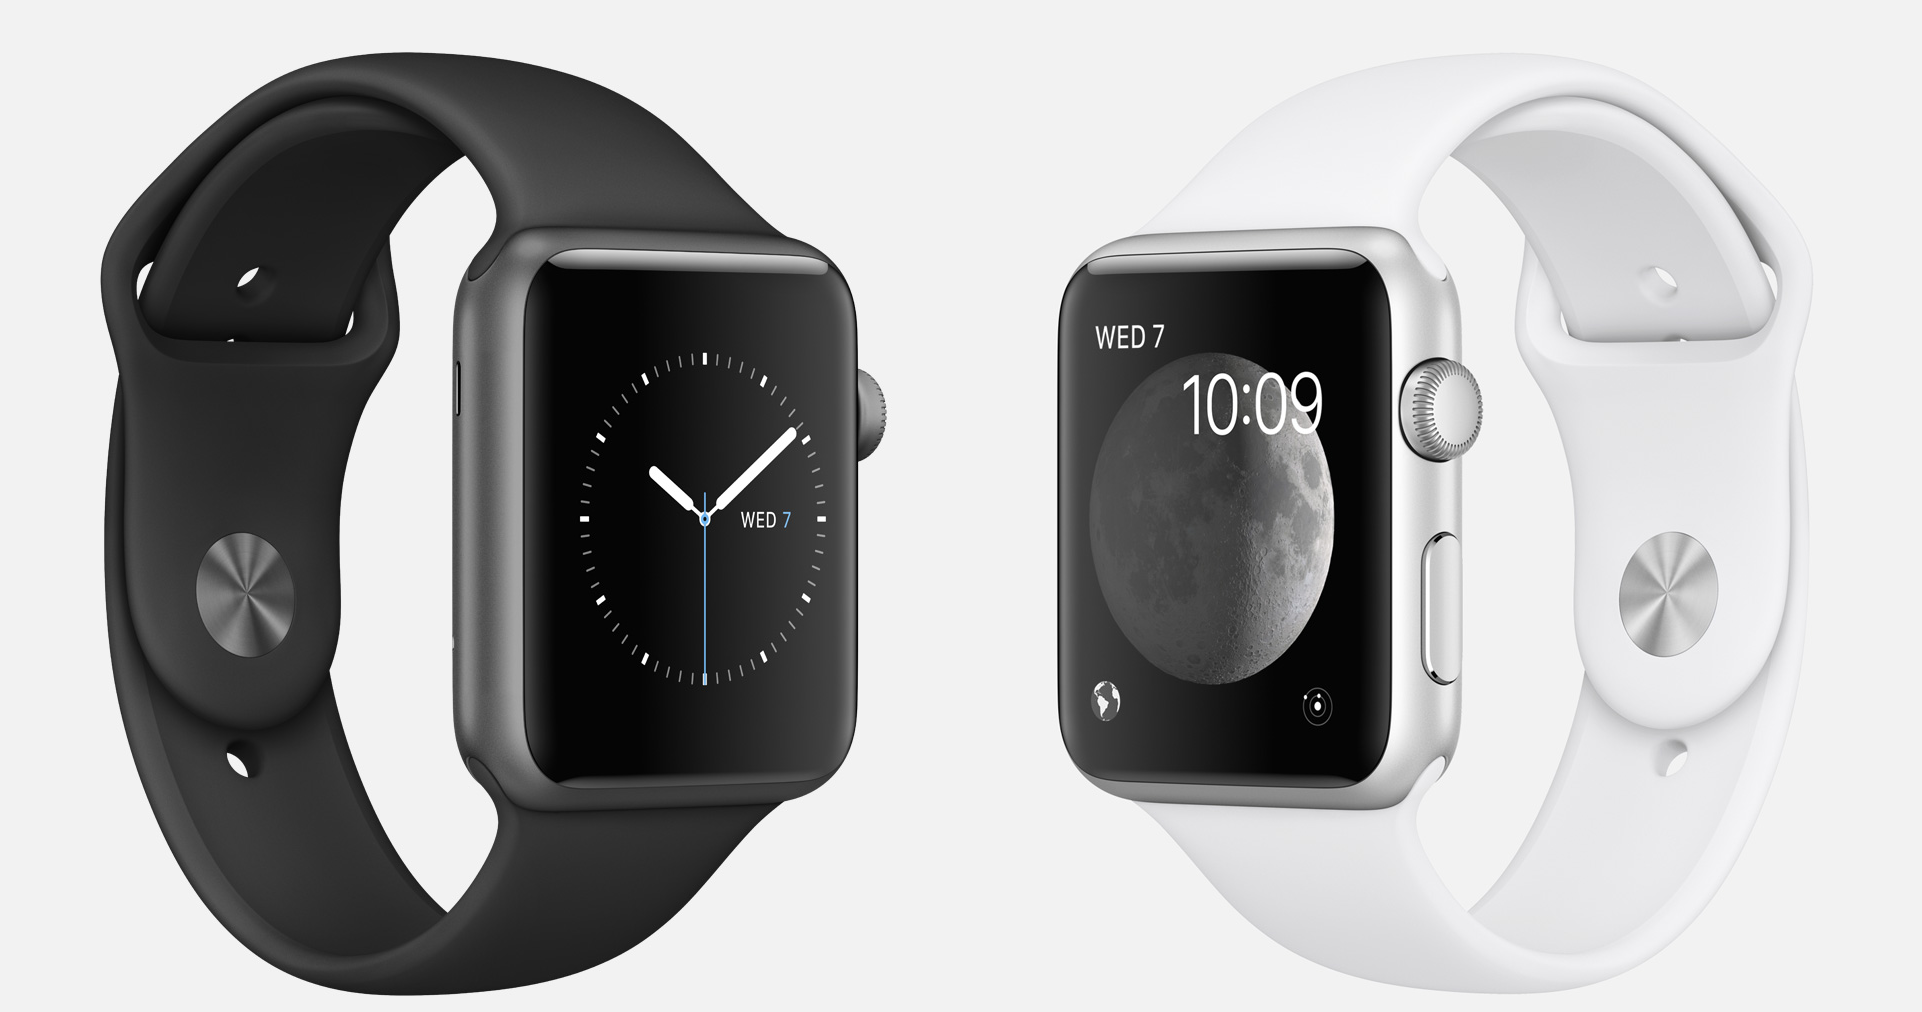 Apple Watch Series 2 is a bit thicker and heavier than the